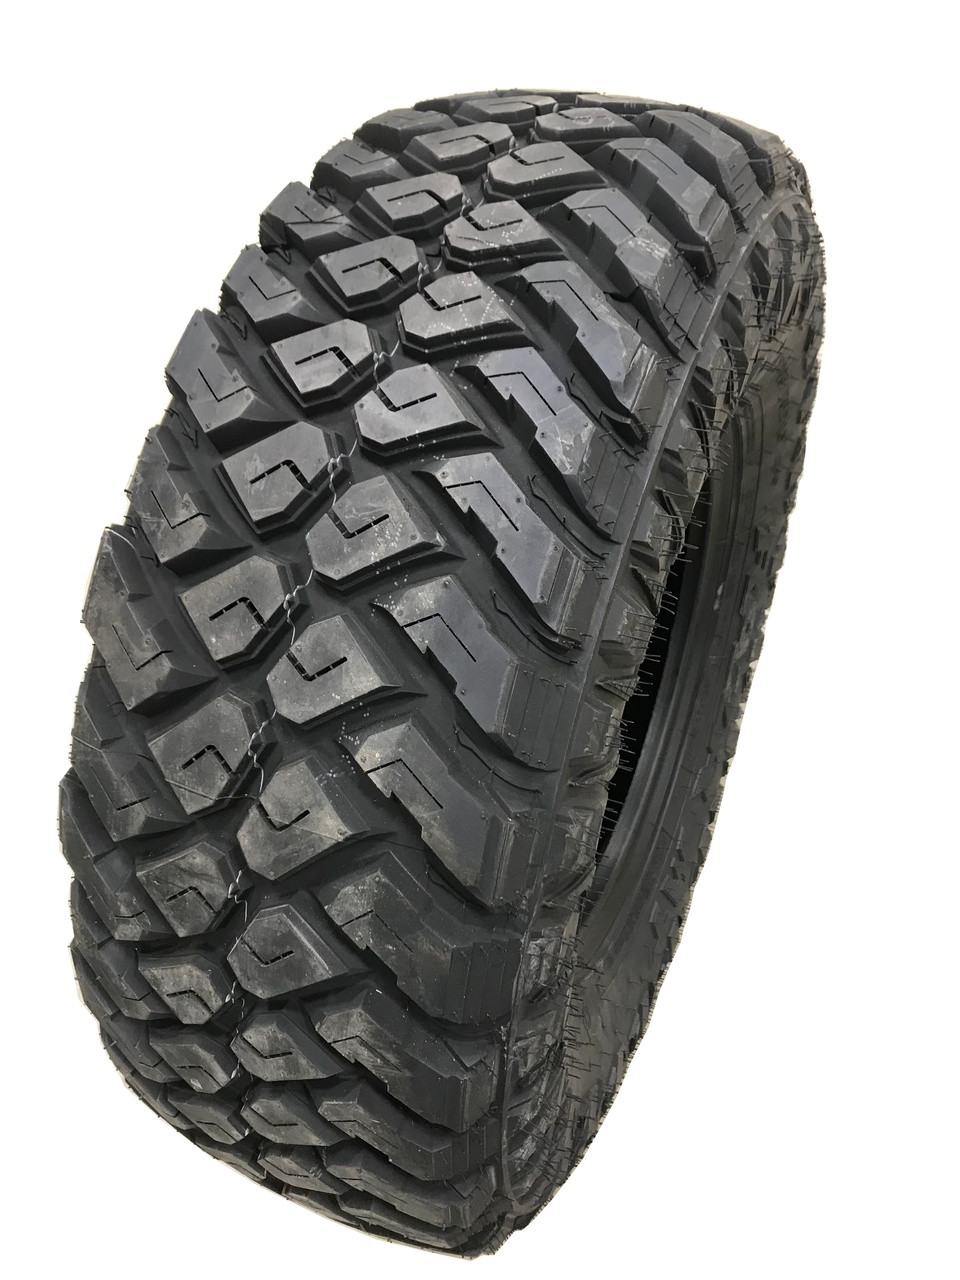 New Tire 35 12.50 20 Maxxis Razr MT Mud 12 Ply LRF LT35x12.50R20 40,000 Mile Warranty